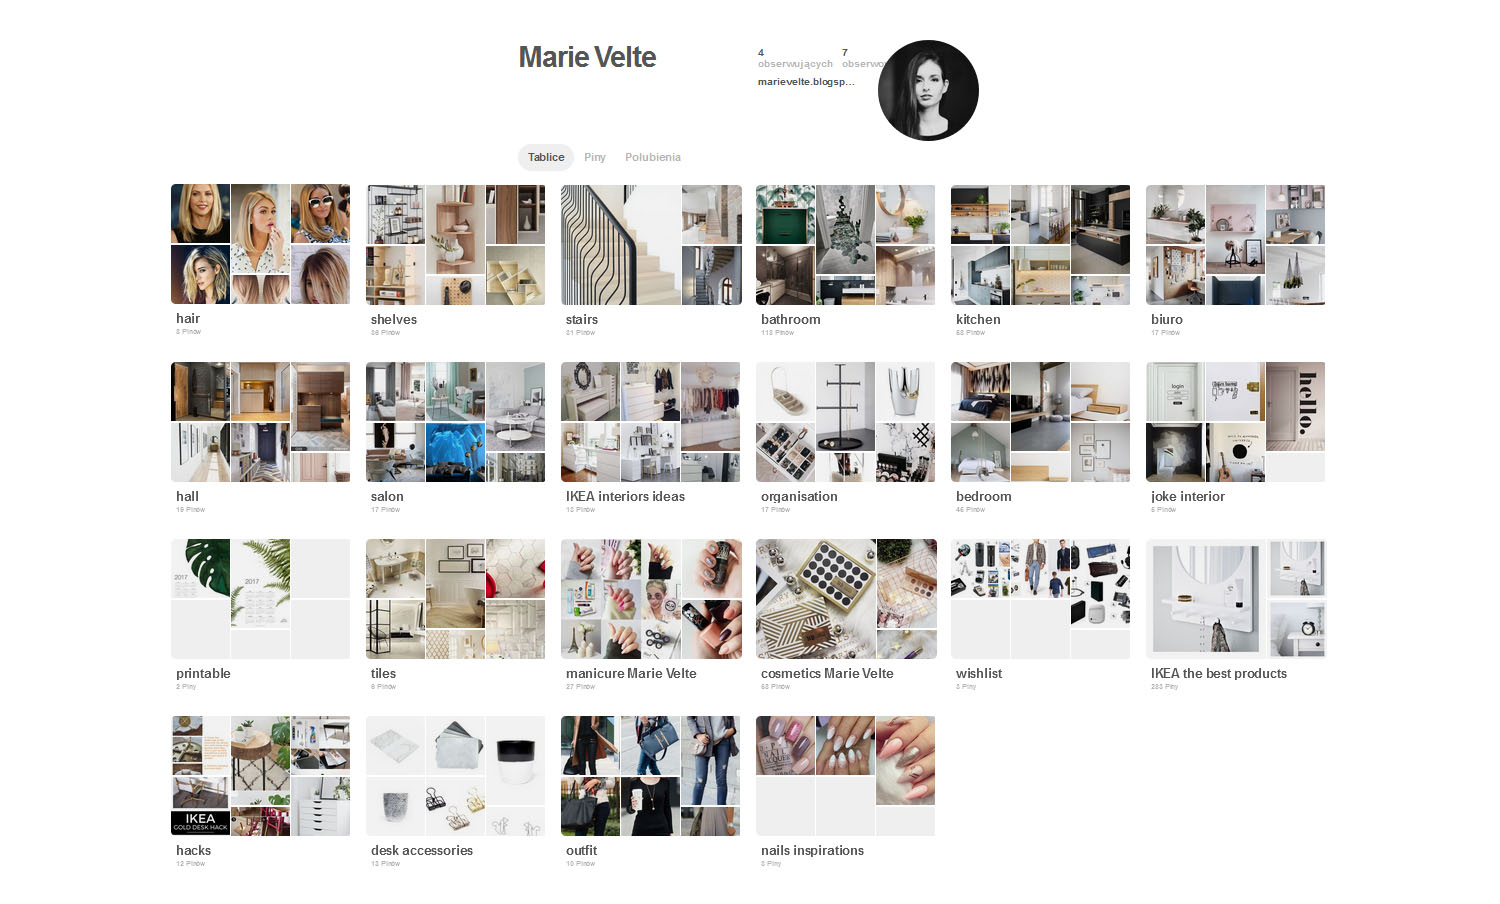 https://pl.pinterest.com/marie_velte/